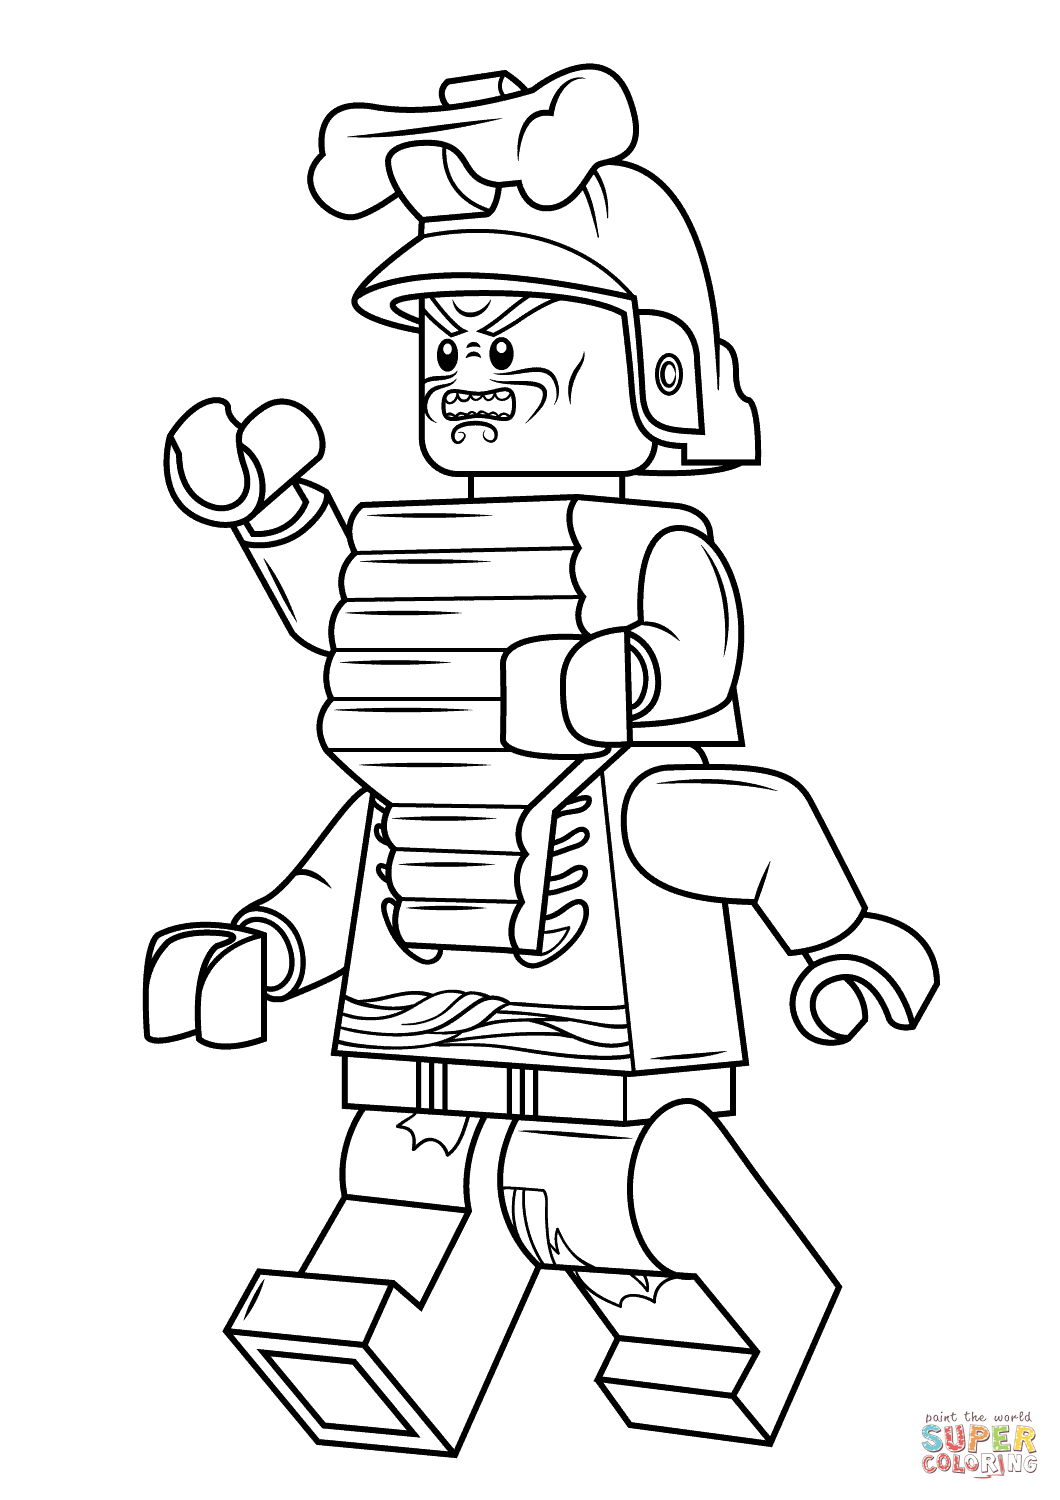 Ninjago coloring pages to color online - Lego Ninjago Lord Garmadon Coloring Pages Printable And Coloring Book To Print For Free Find More Coloring Pages Online For Kids And Adults Of Lego Ninjago